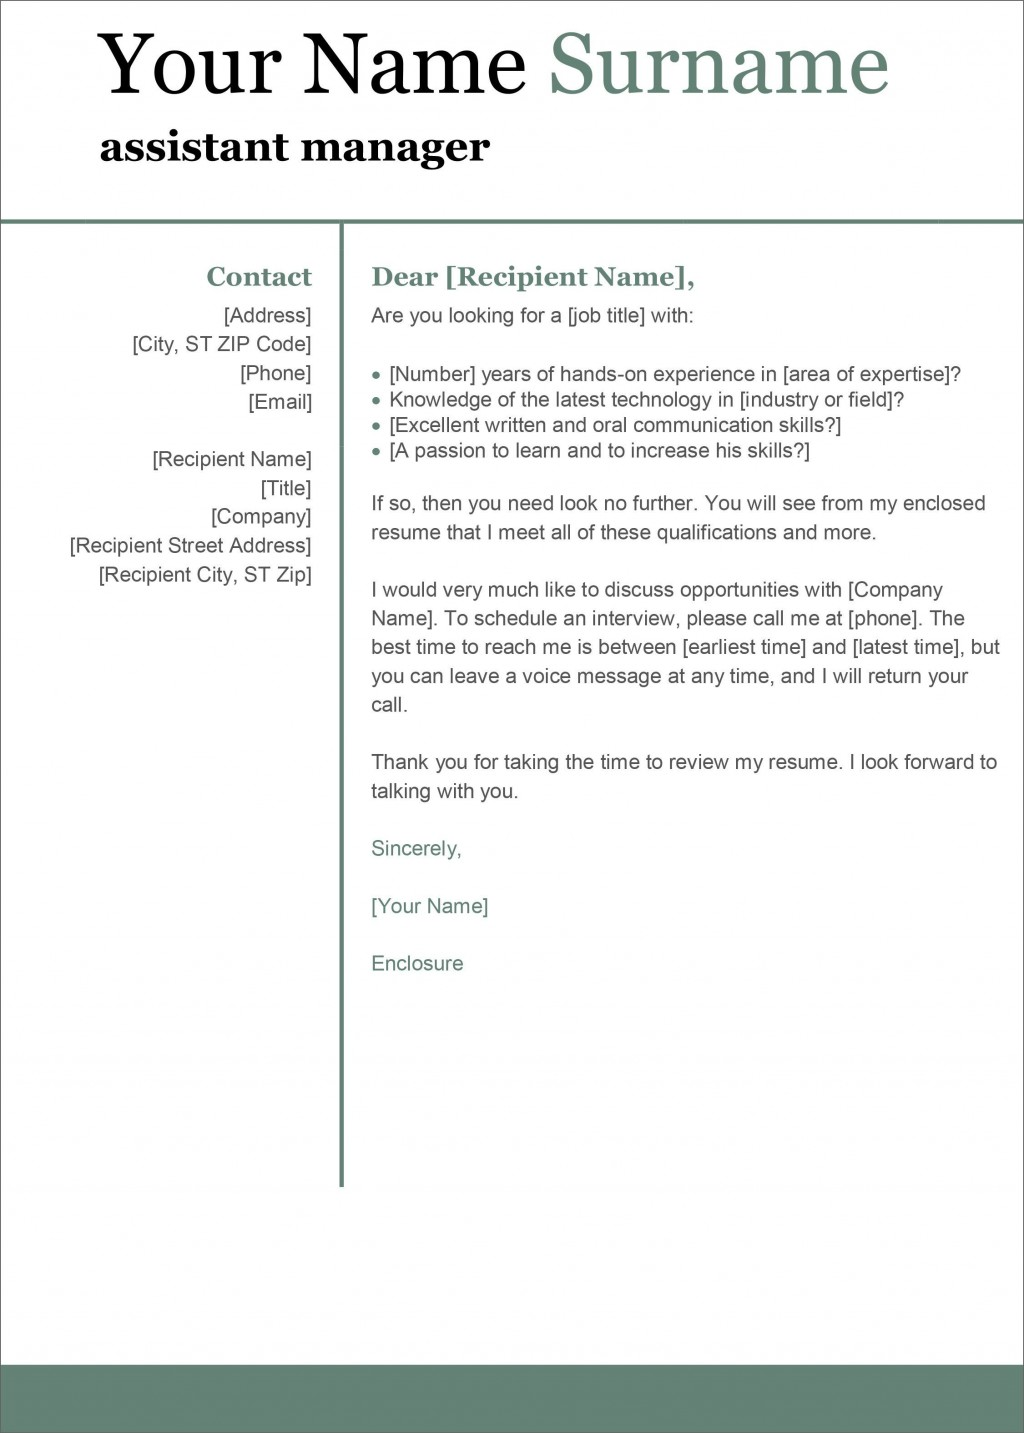 006 Unforgettable Resume Cover Letter Template Microsoft Word Highest Quality Large